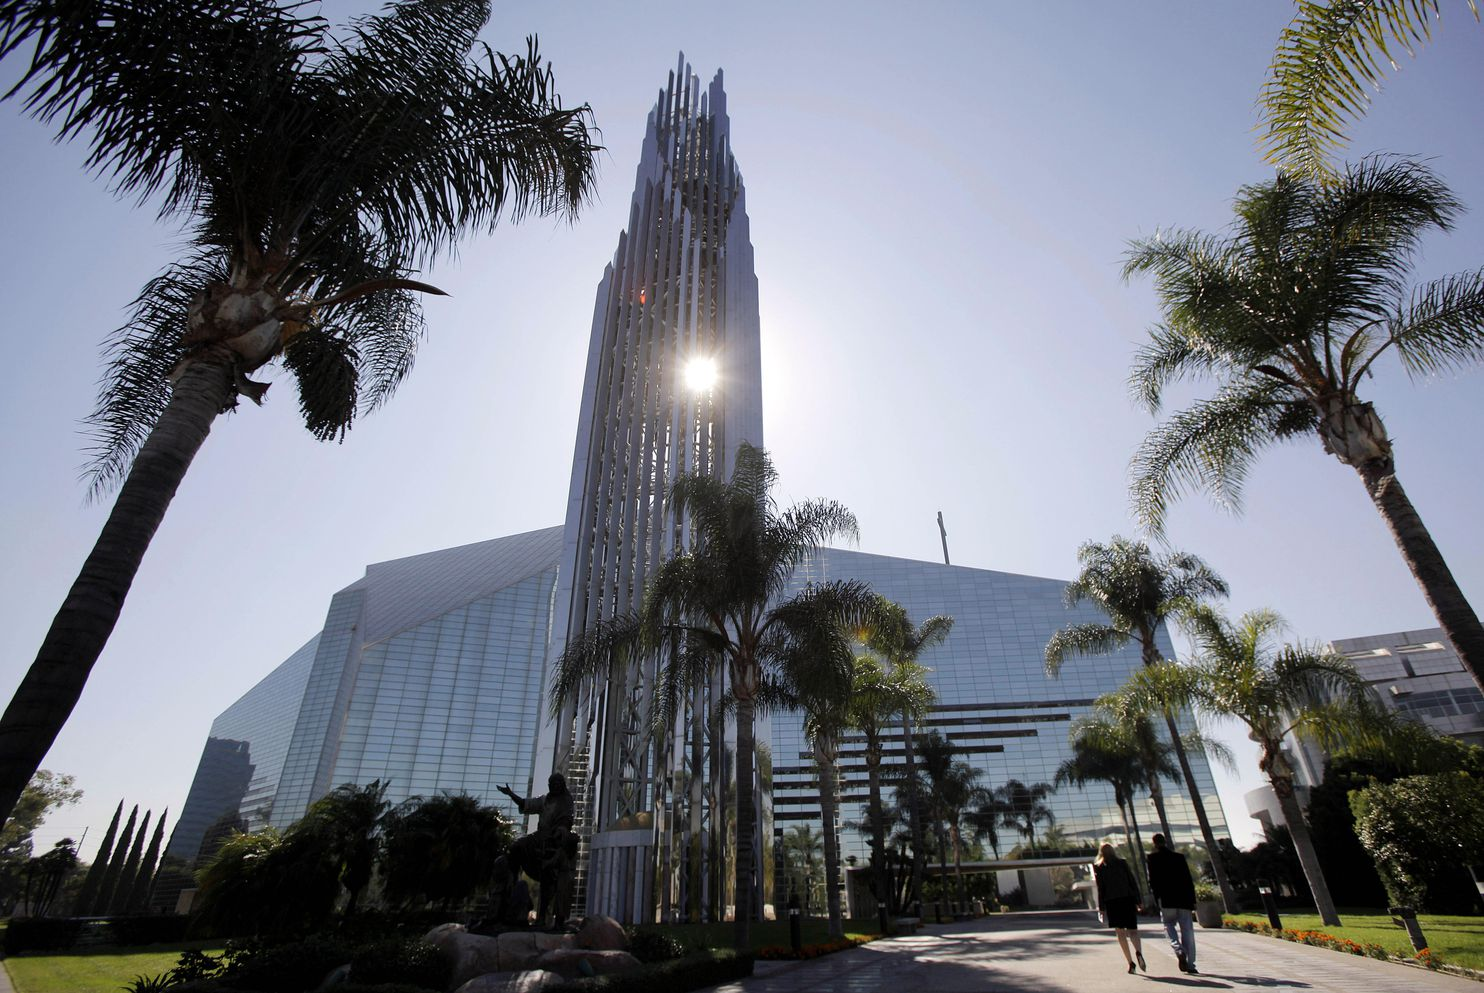 the crystal cathedral was